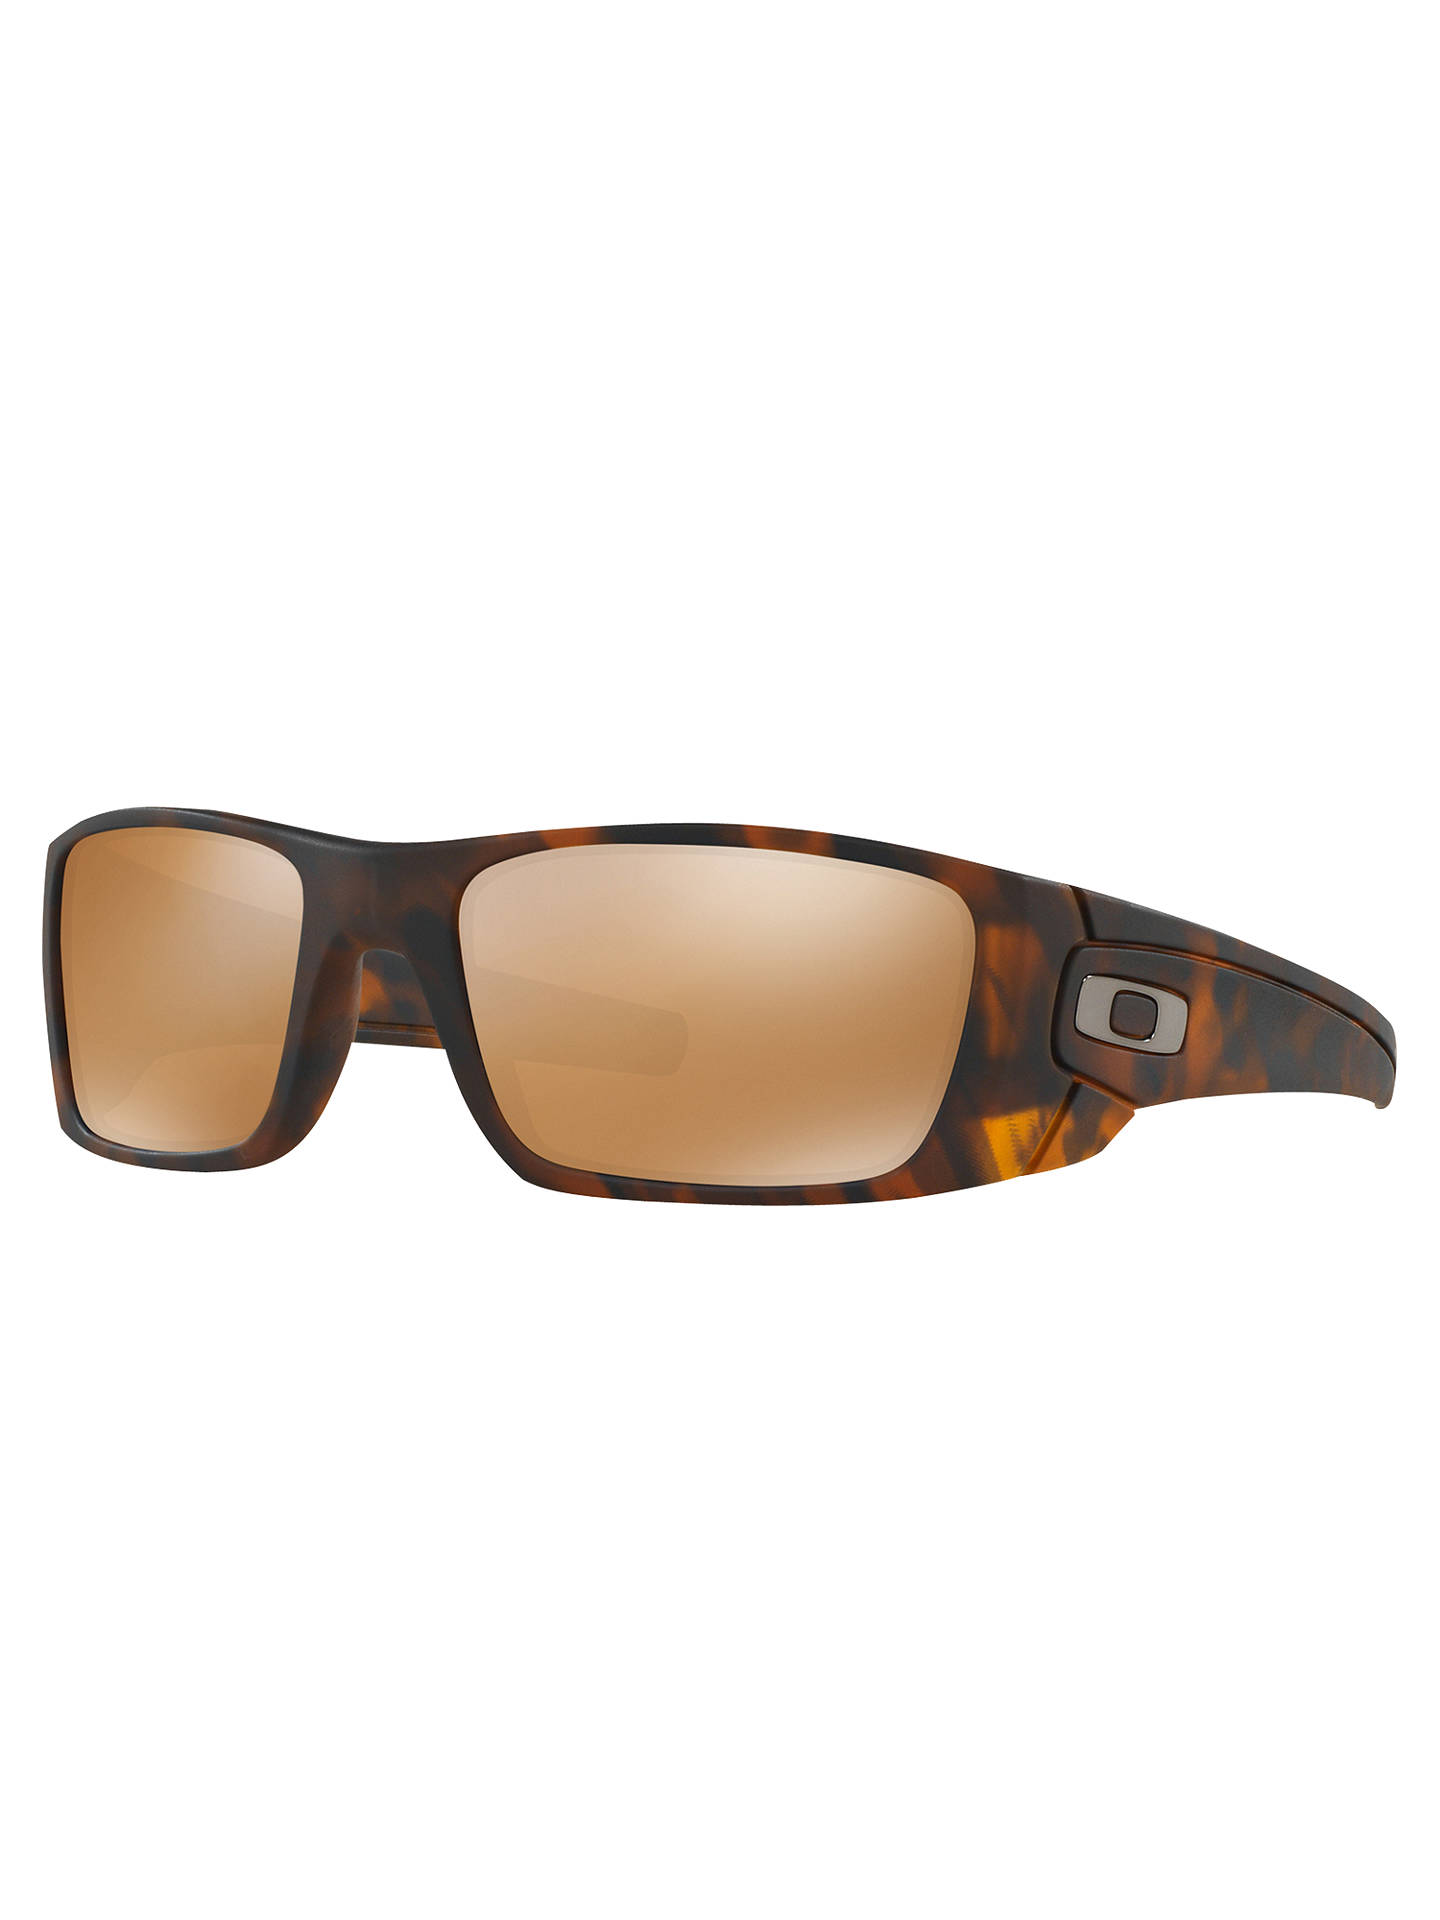 a875fd3a21 Oakley OO9096 Fuel Cell Rectangular Sunglasses at John Lewis   Partners